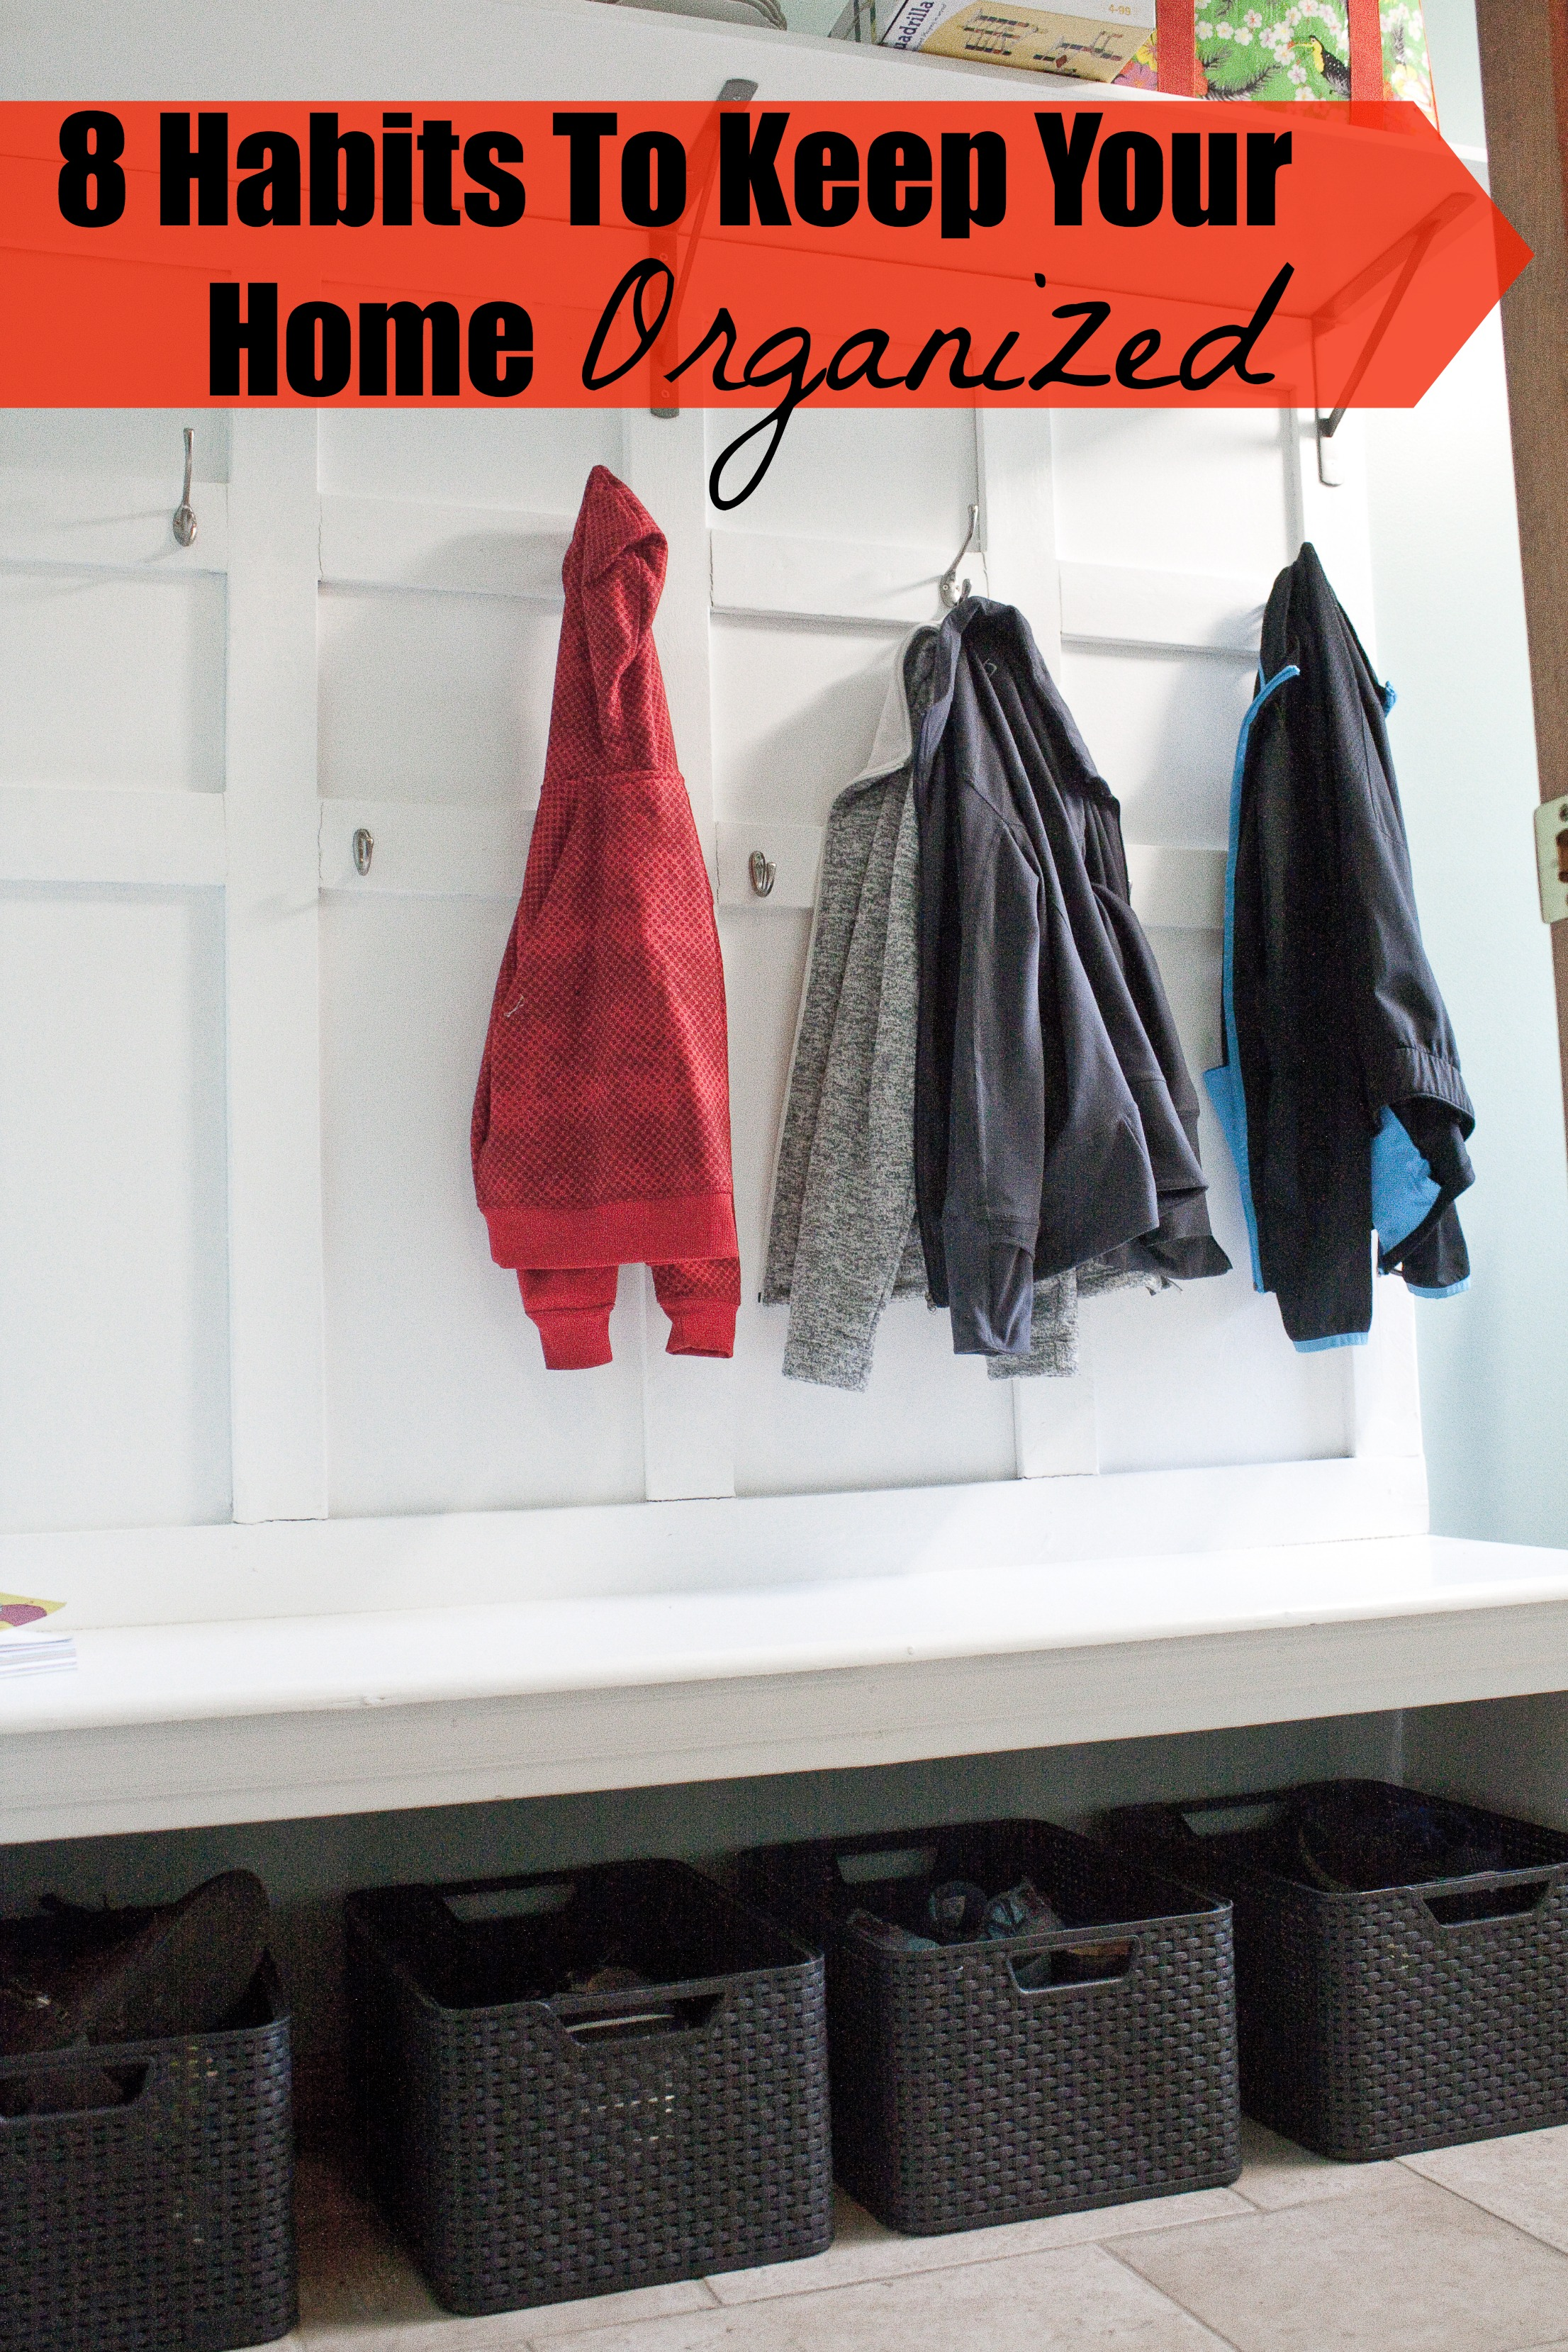 8 Habits To Keep Your Home Organized